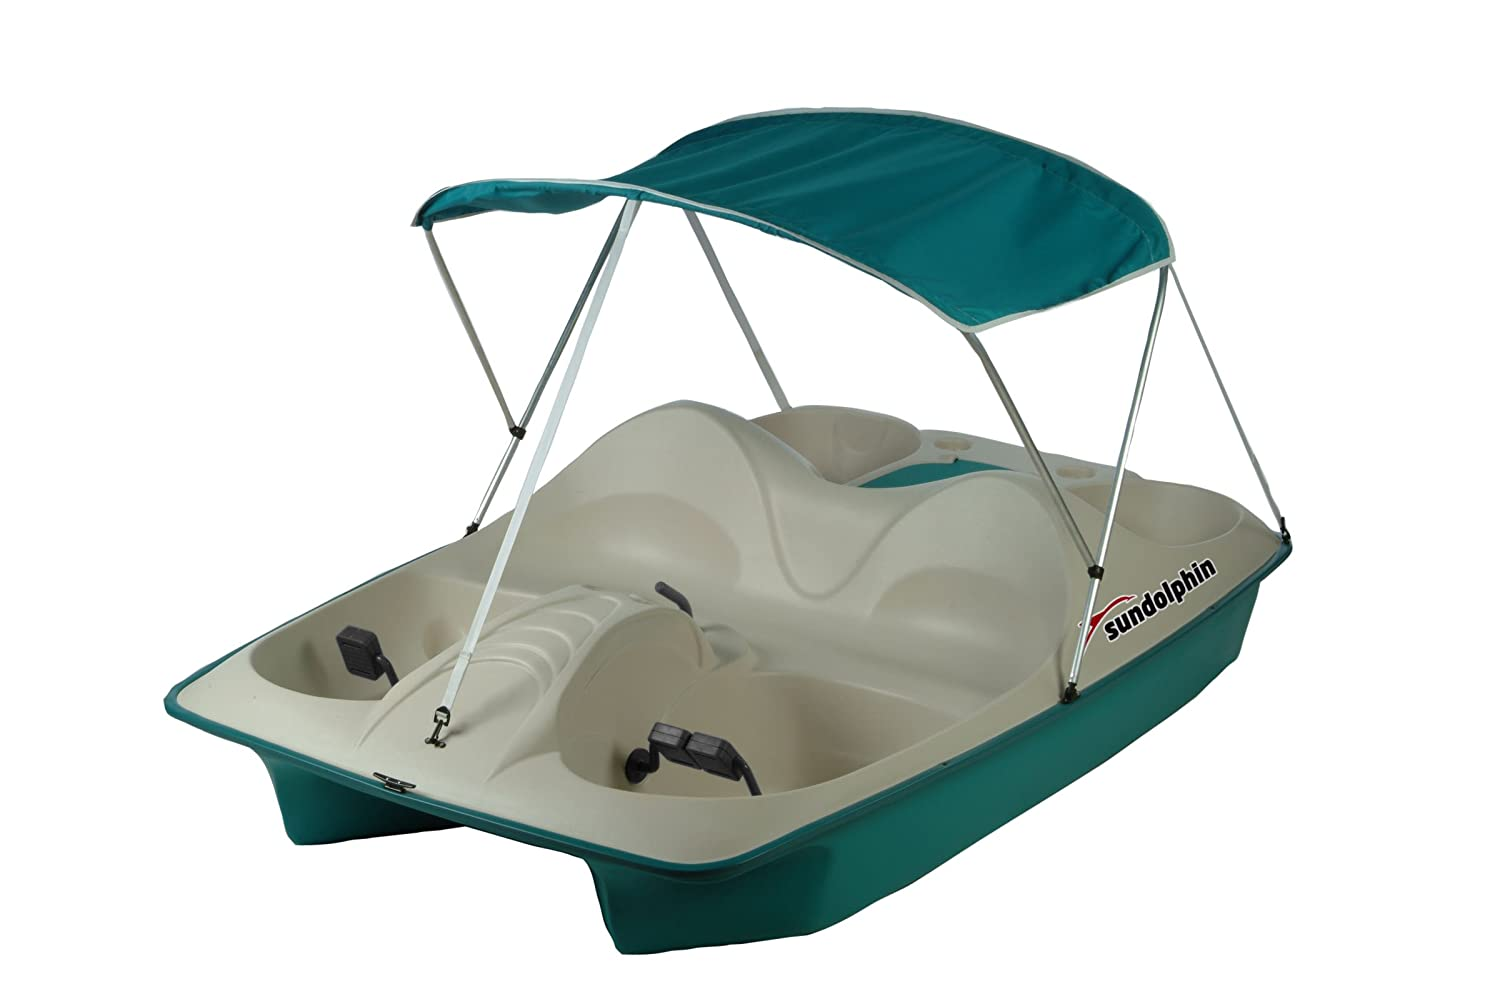 Amazon.com : Sun Dolphin 5 Seat Pedal Boat with Canopy (Blue ...